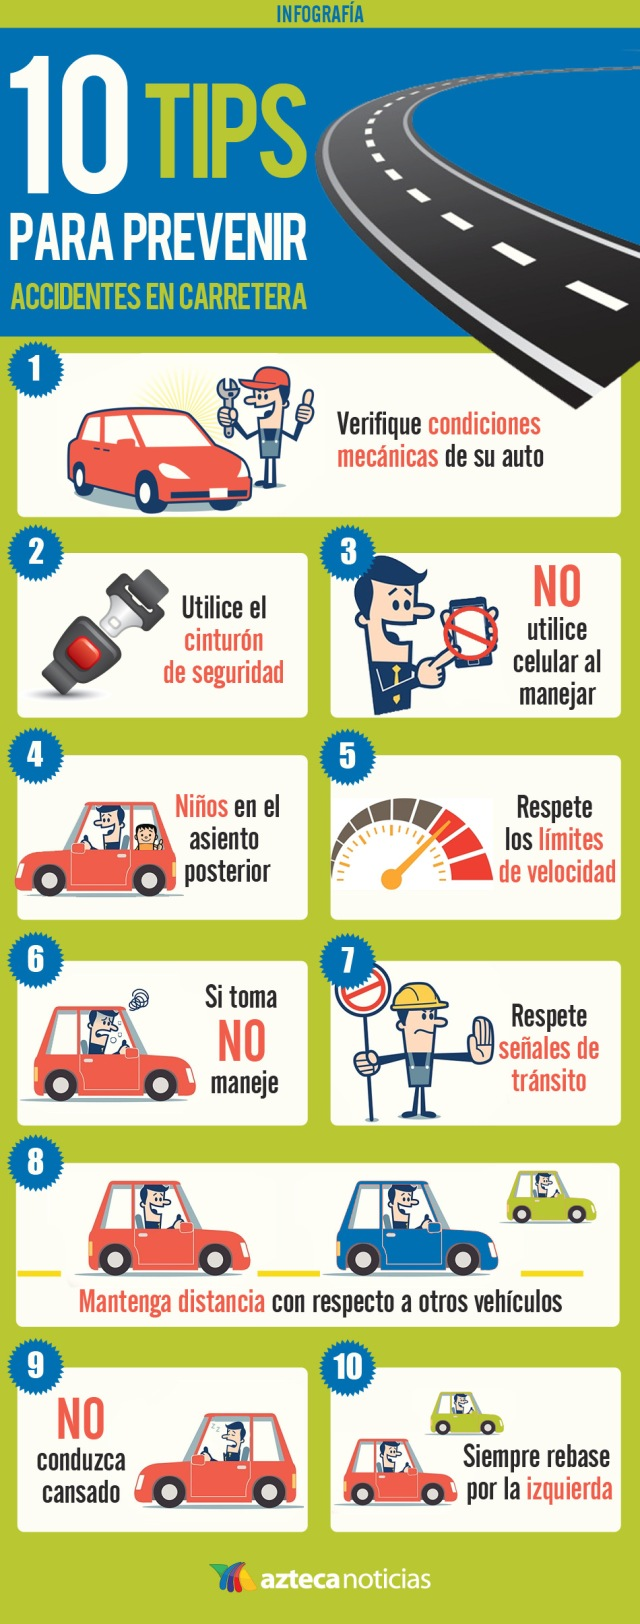 Tips-para-prevenir-accidentes-carretera-1934092[1]